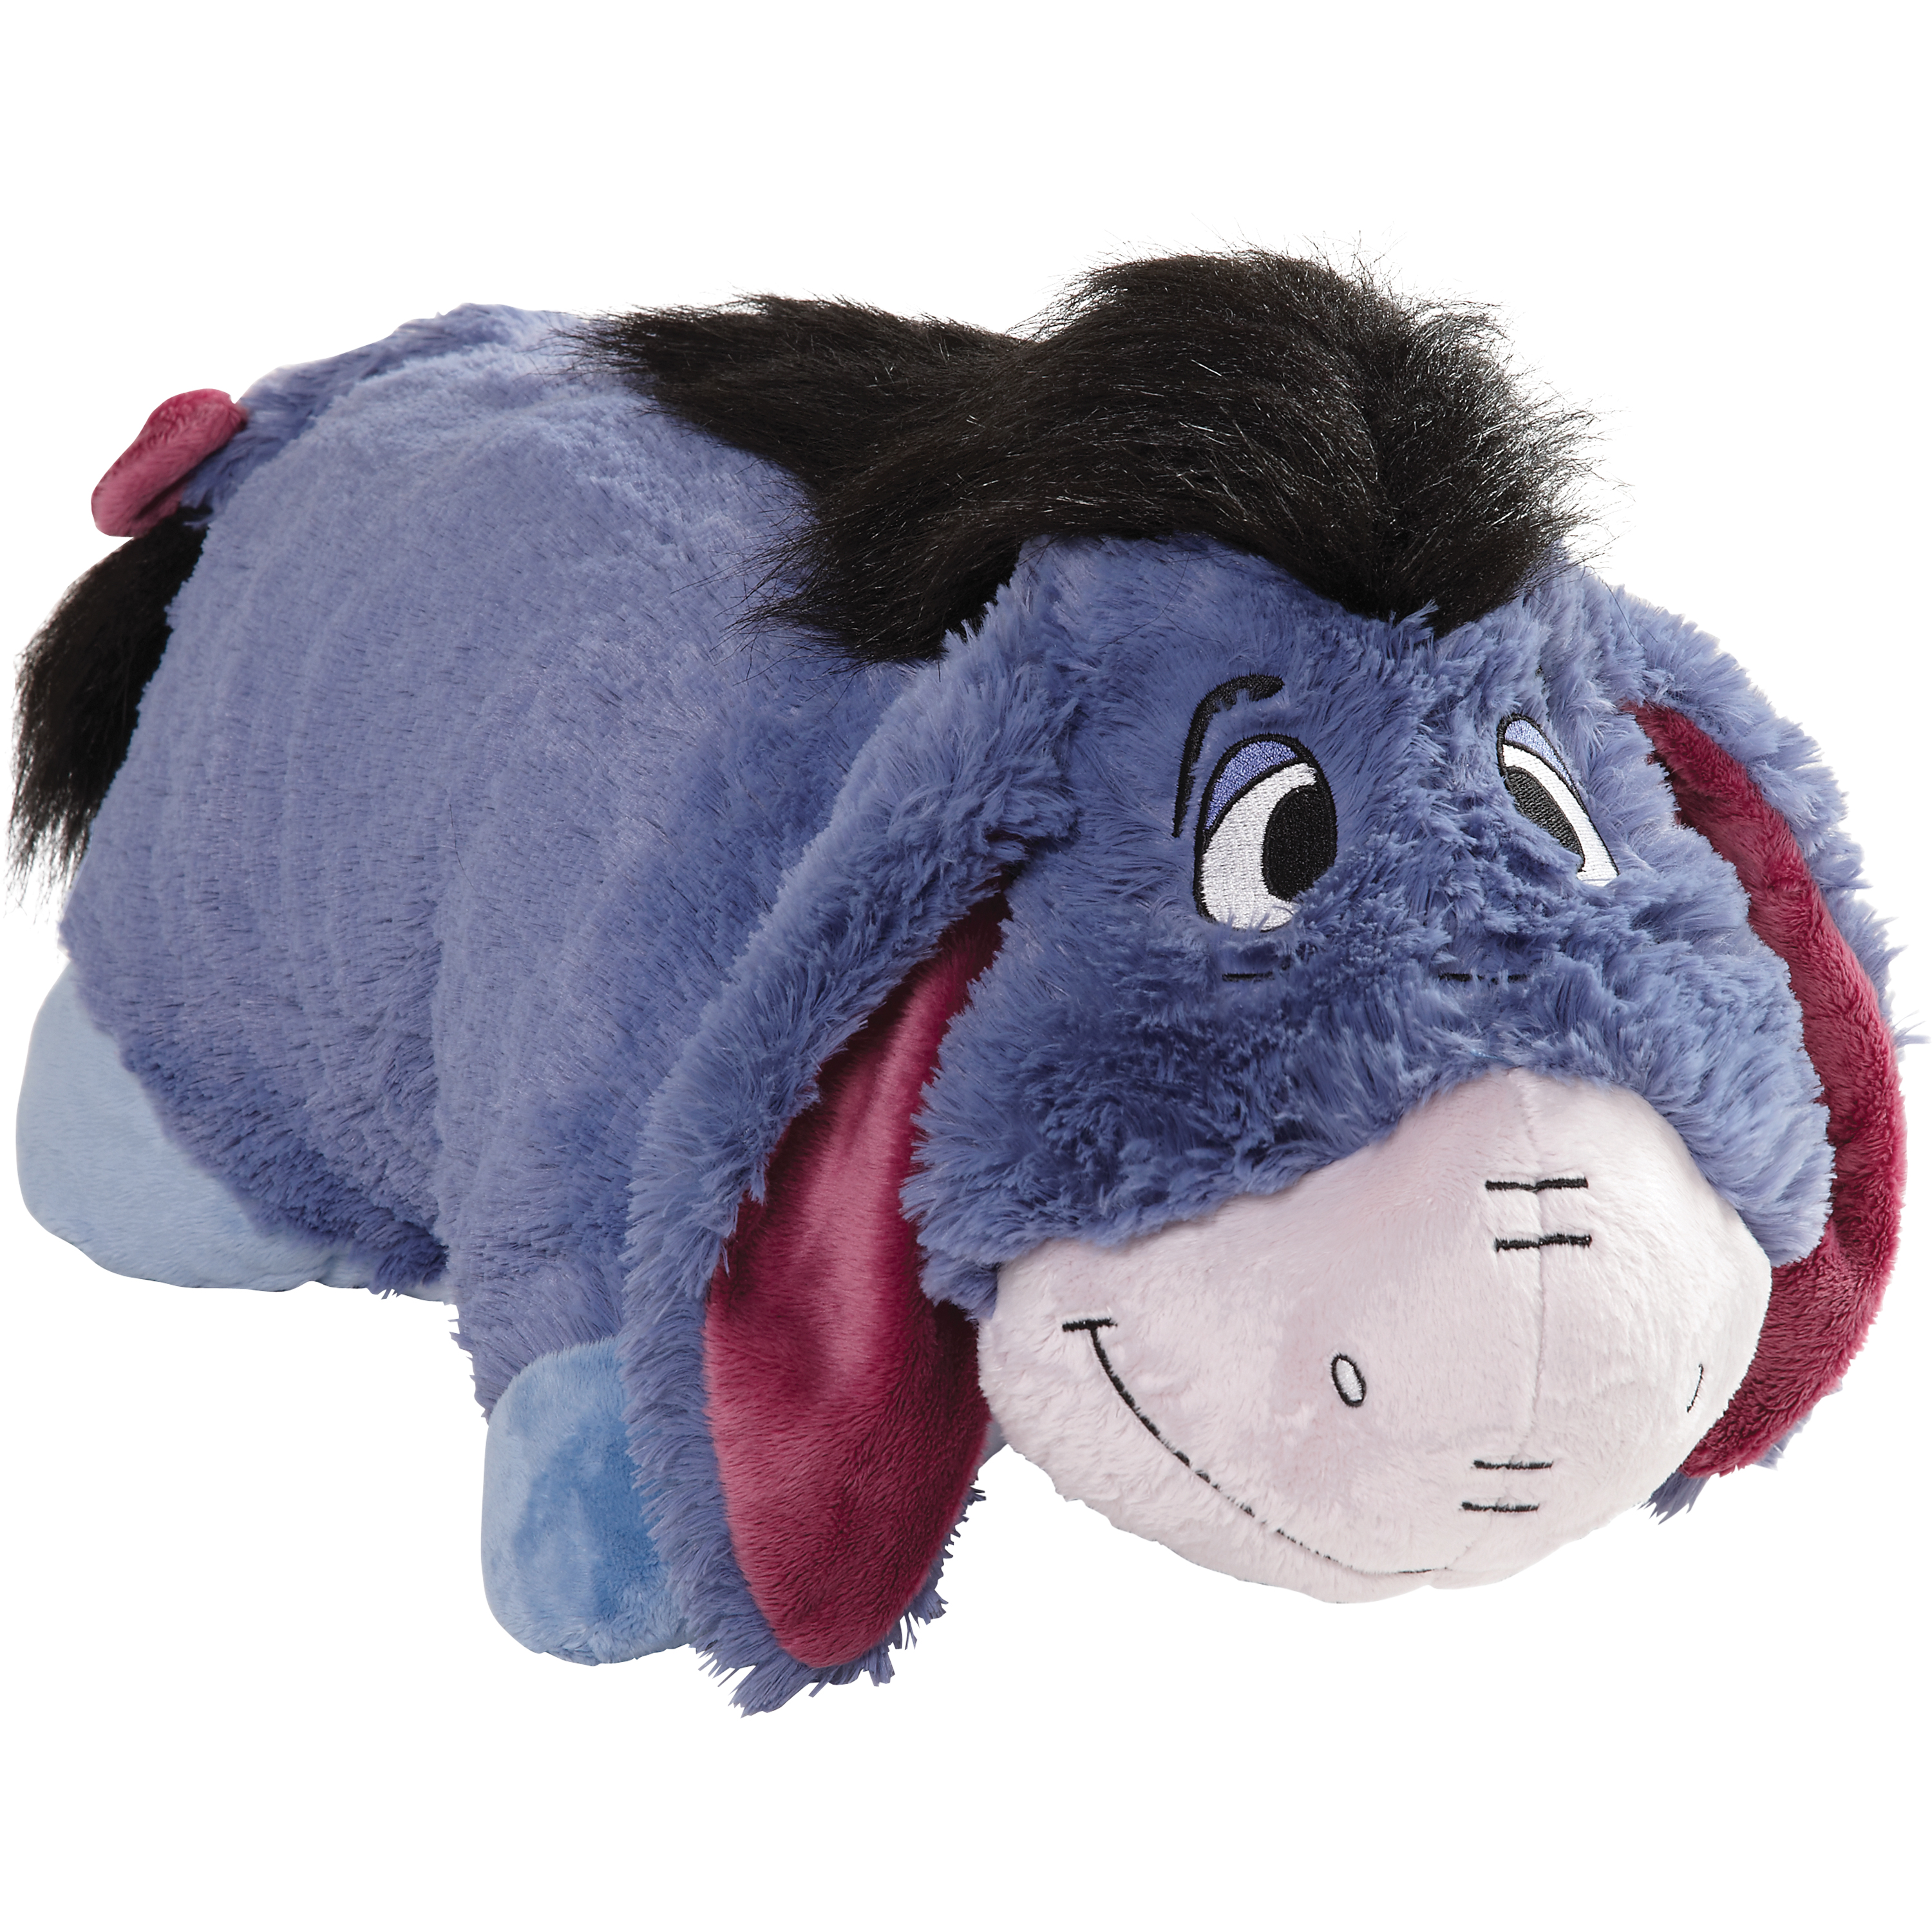 "Pillow Pets 16"" Disney Winnie the Pooh Eeyore Stuffed Animal Plush Toy Pillow Pet"